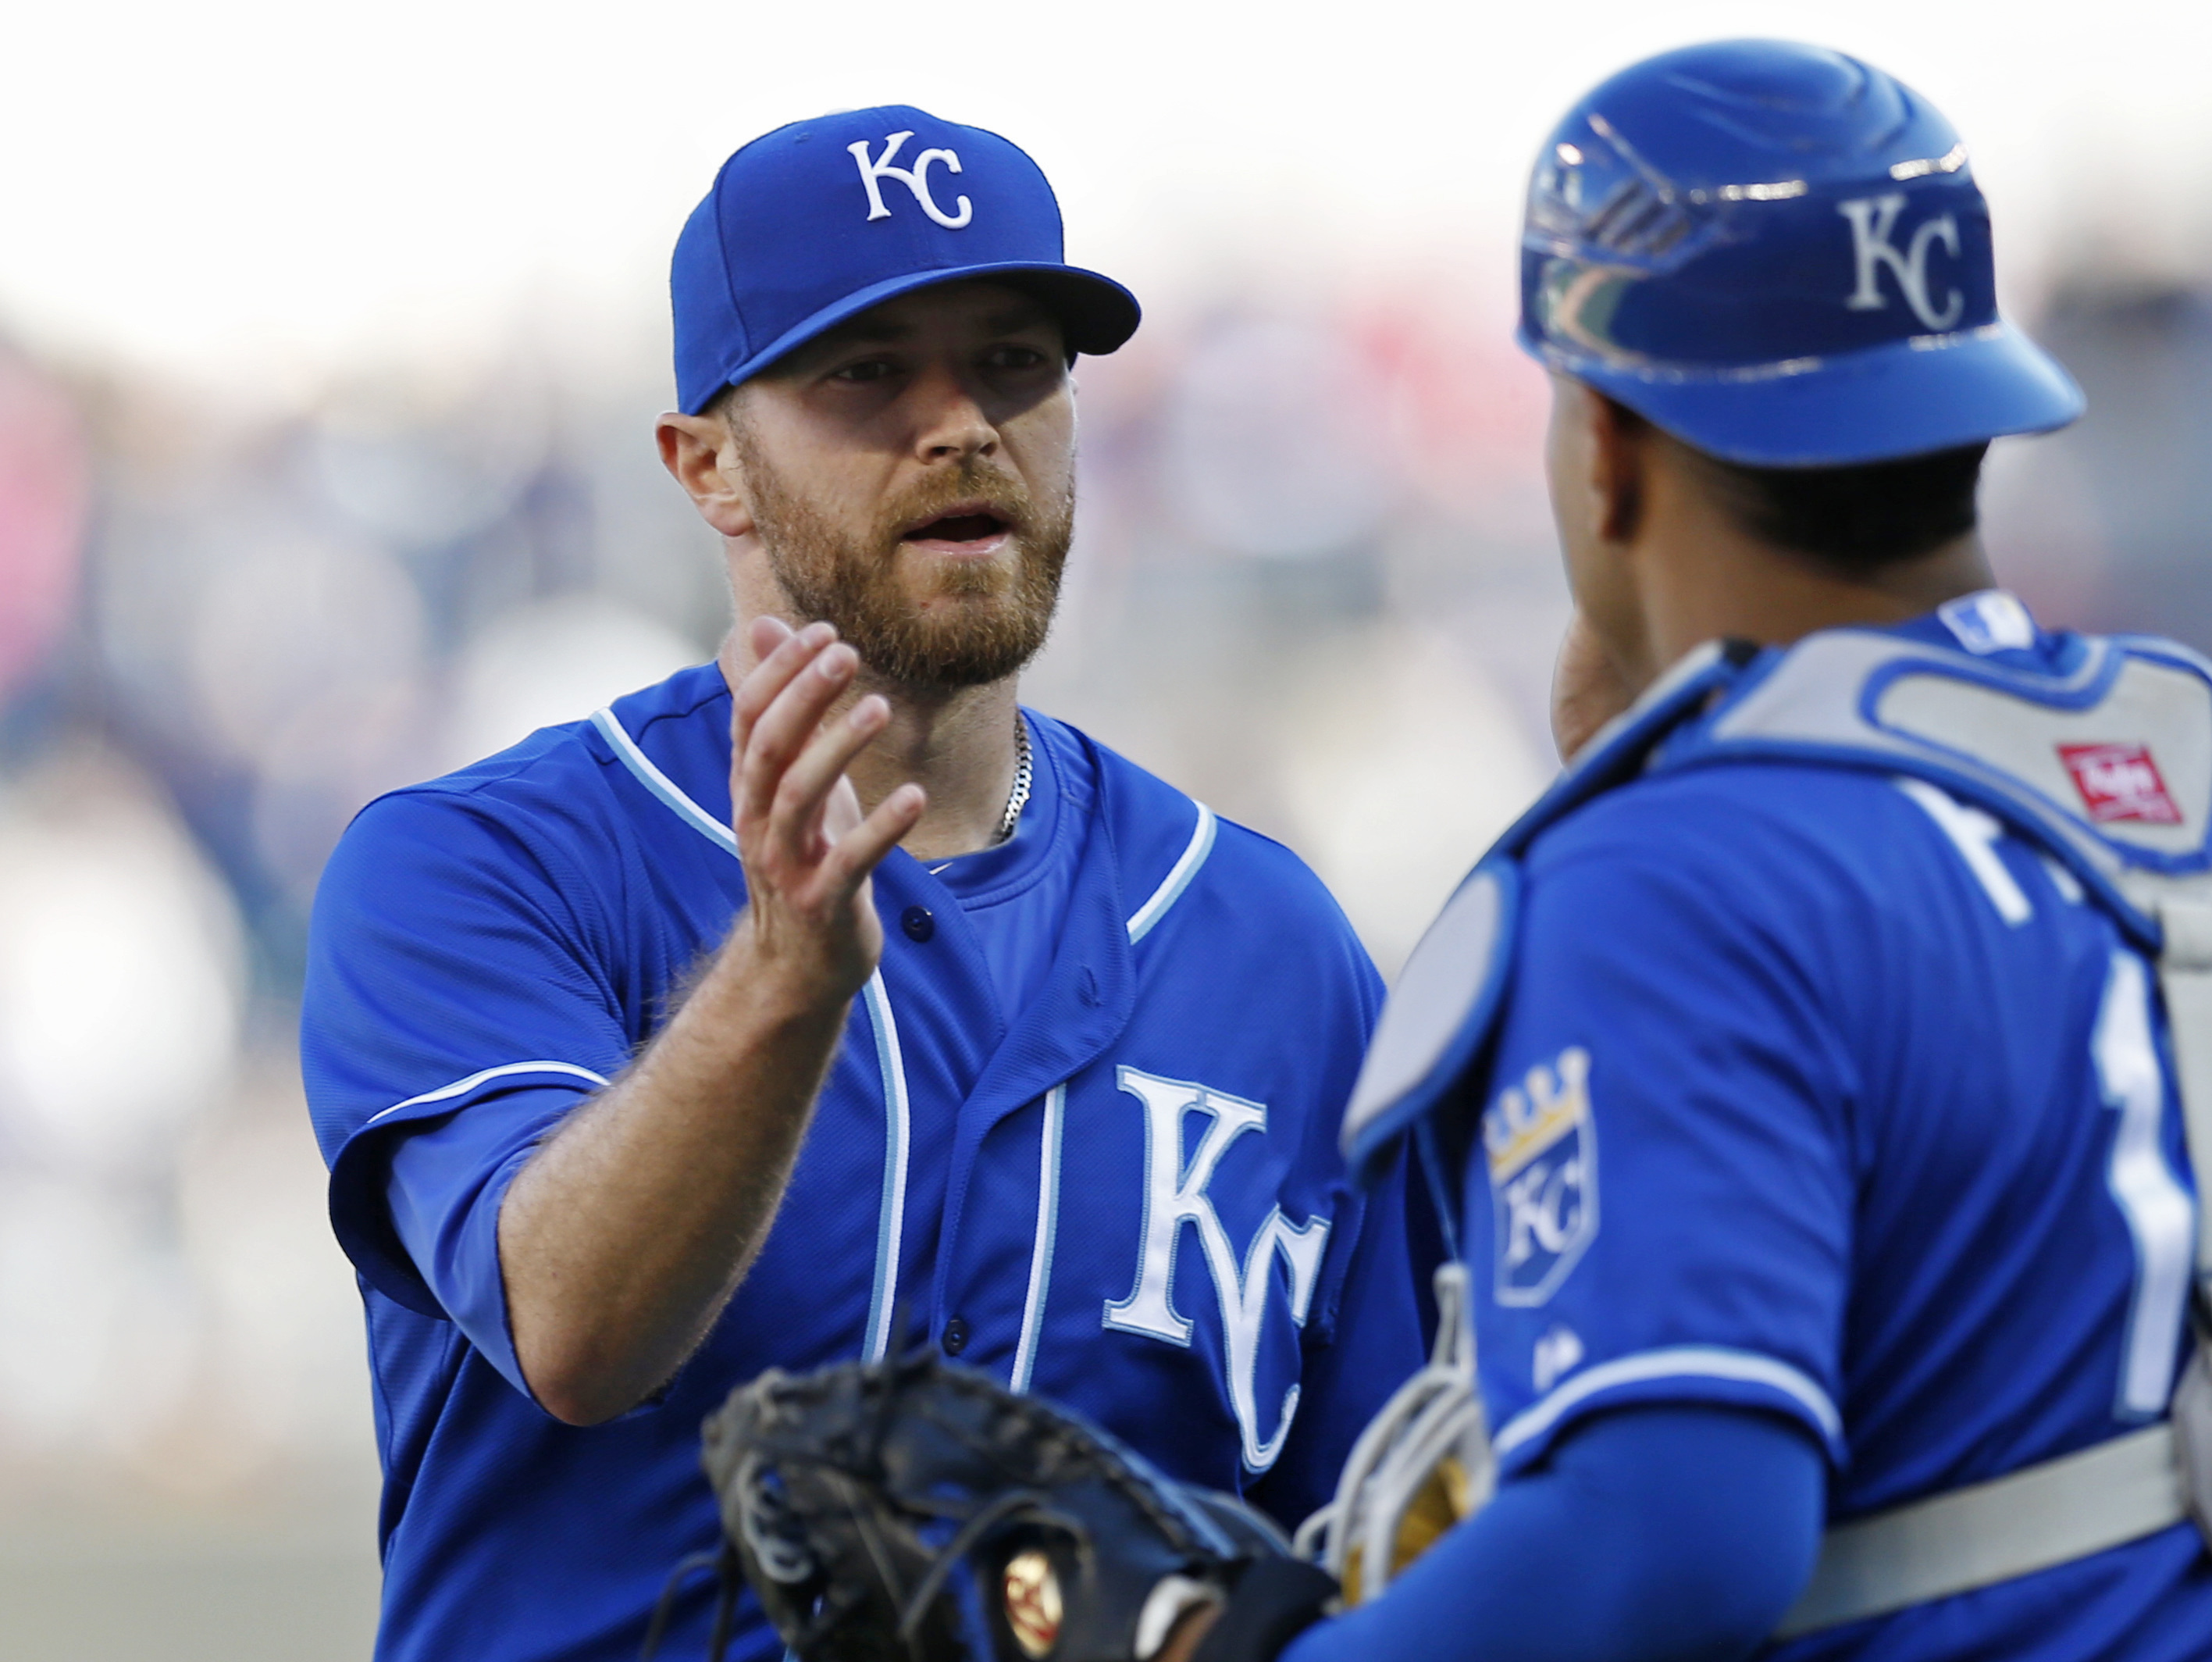 Kansas City Royals pitcher Wade Davis, left, and catcher Salvador Perez celebrate the Royals' 5-1 win over the Minnesota Twins in a baseball game, Saturday, Oct. 3, 2015, in Minneapolis. The Royals win ended the Twins playoff chances. Davis entered the ni